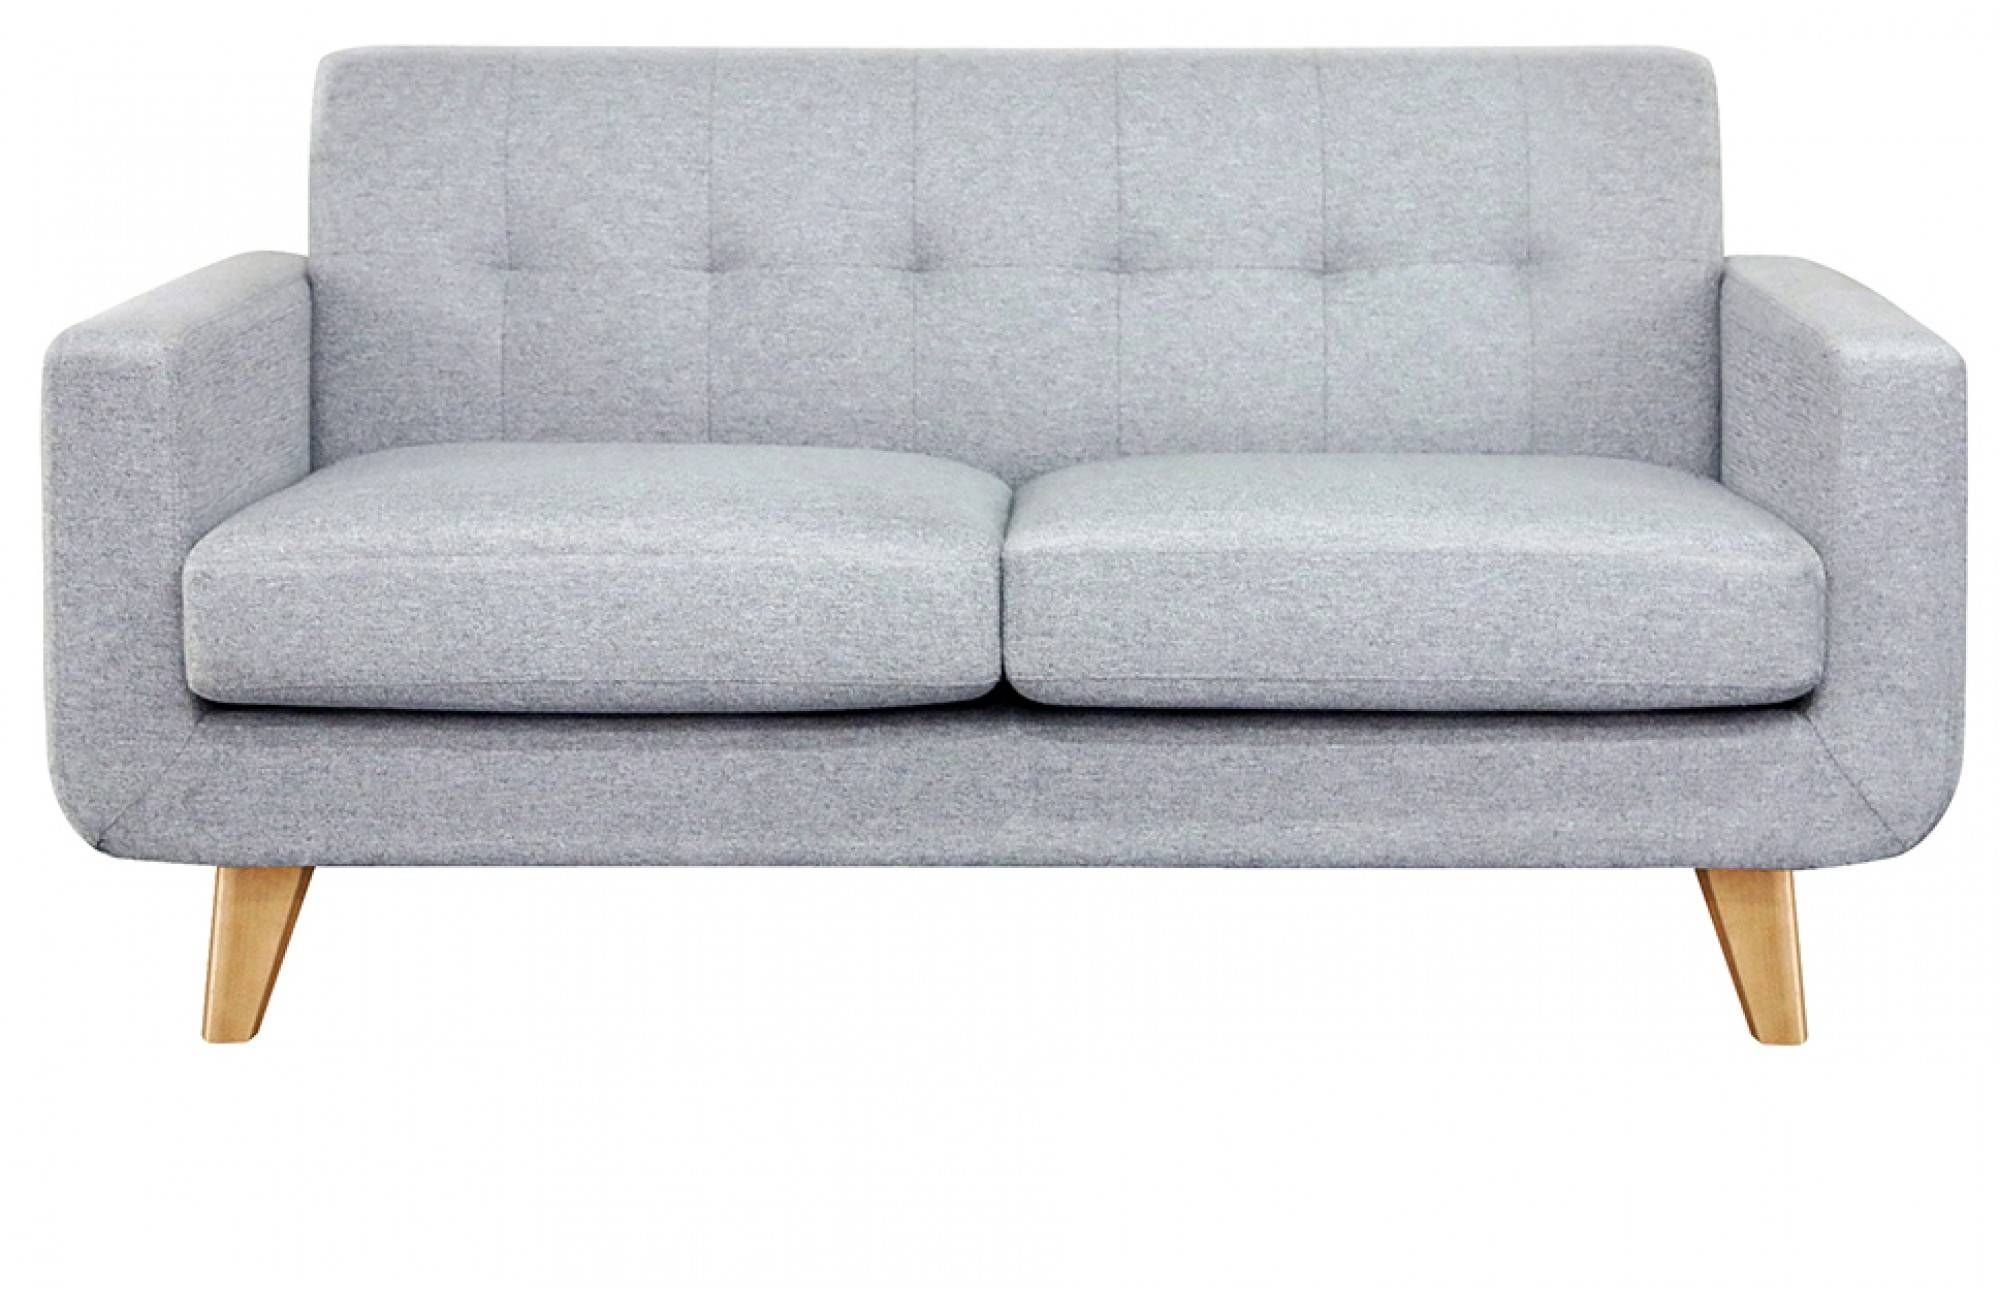 Small Design But Big Style, A Two Seater Sofa – Tcg for Two Seater Sofas (Image 23 of 30)